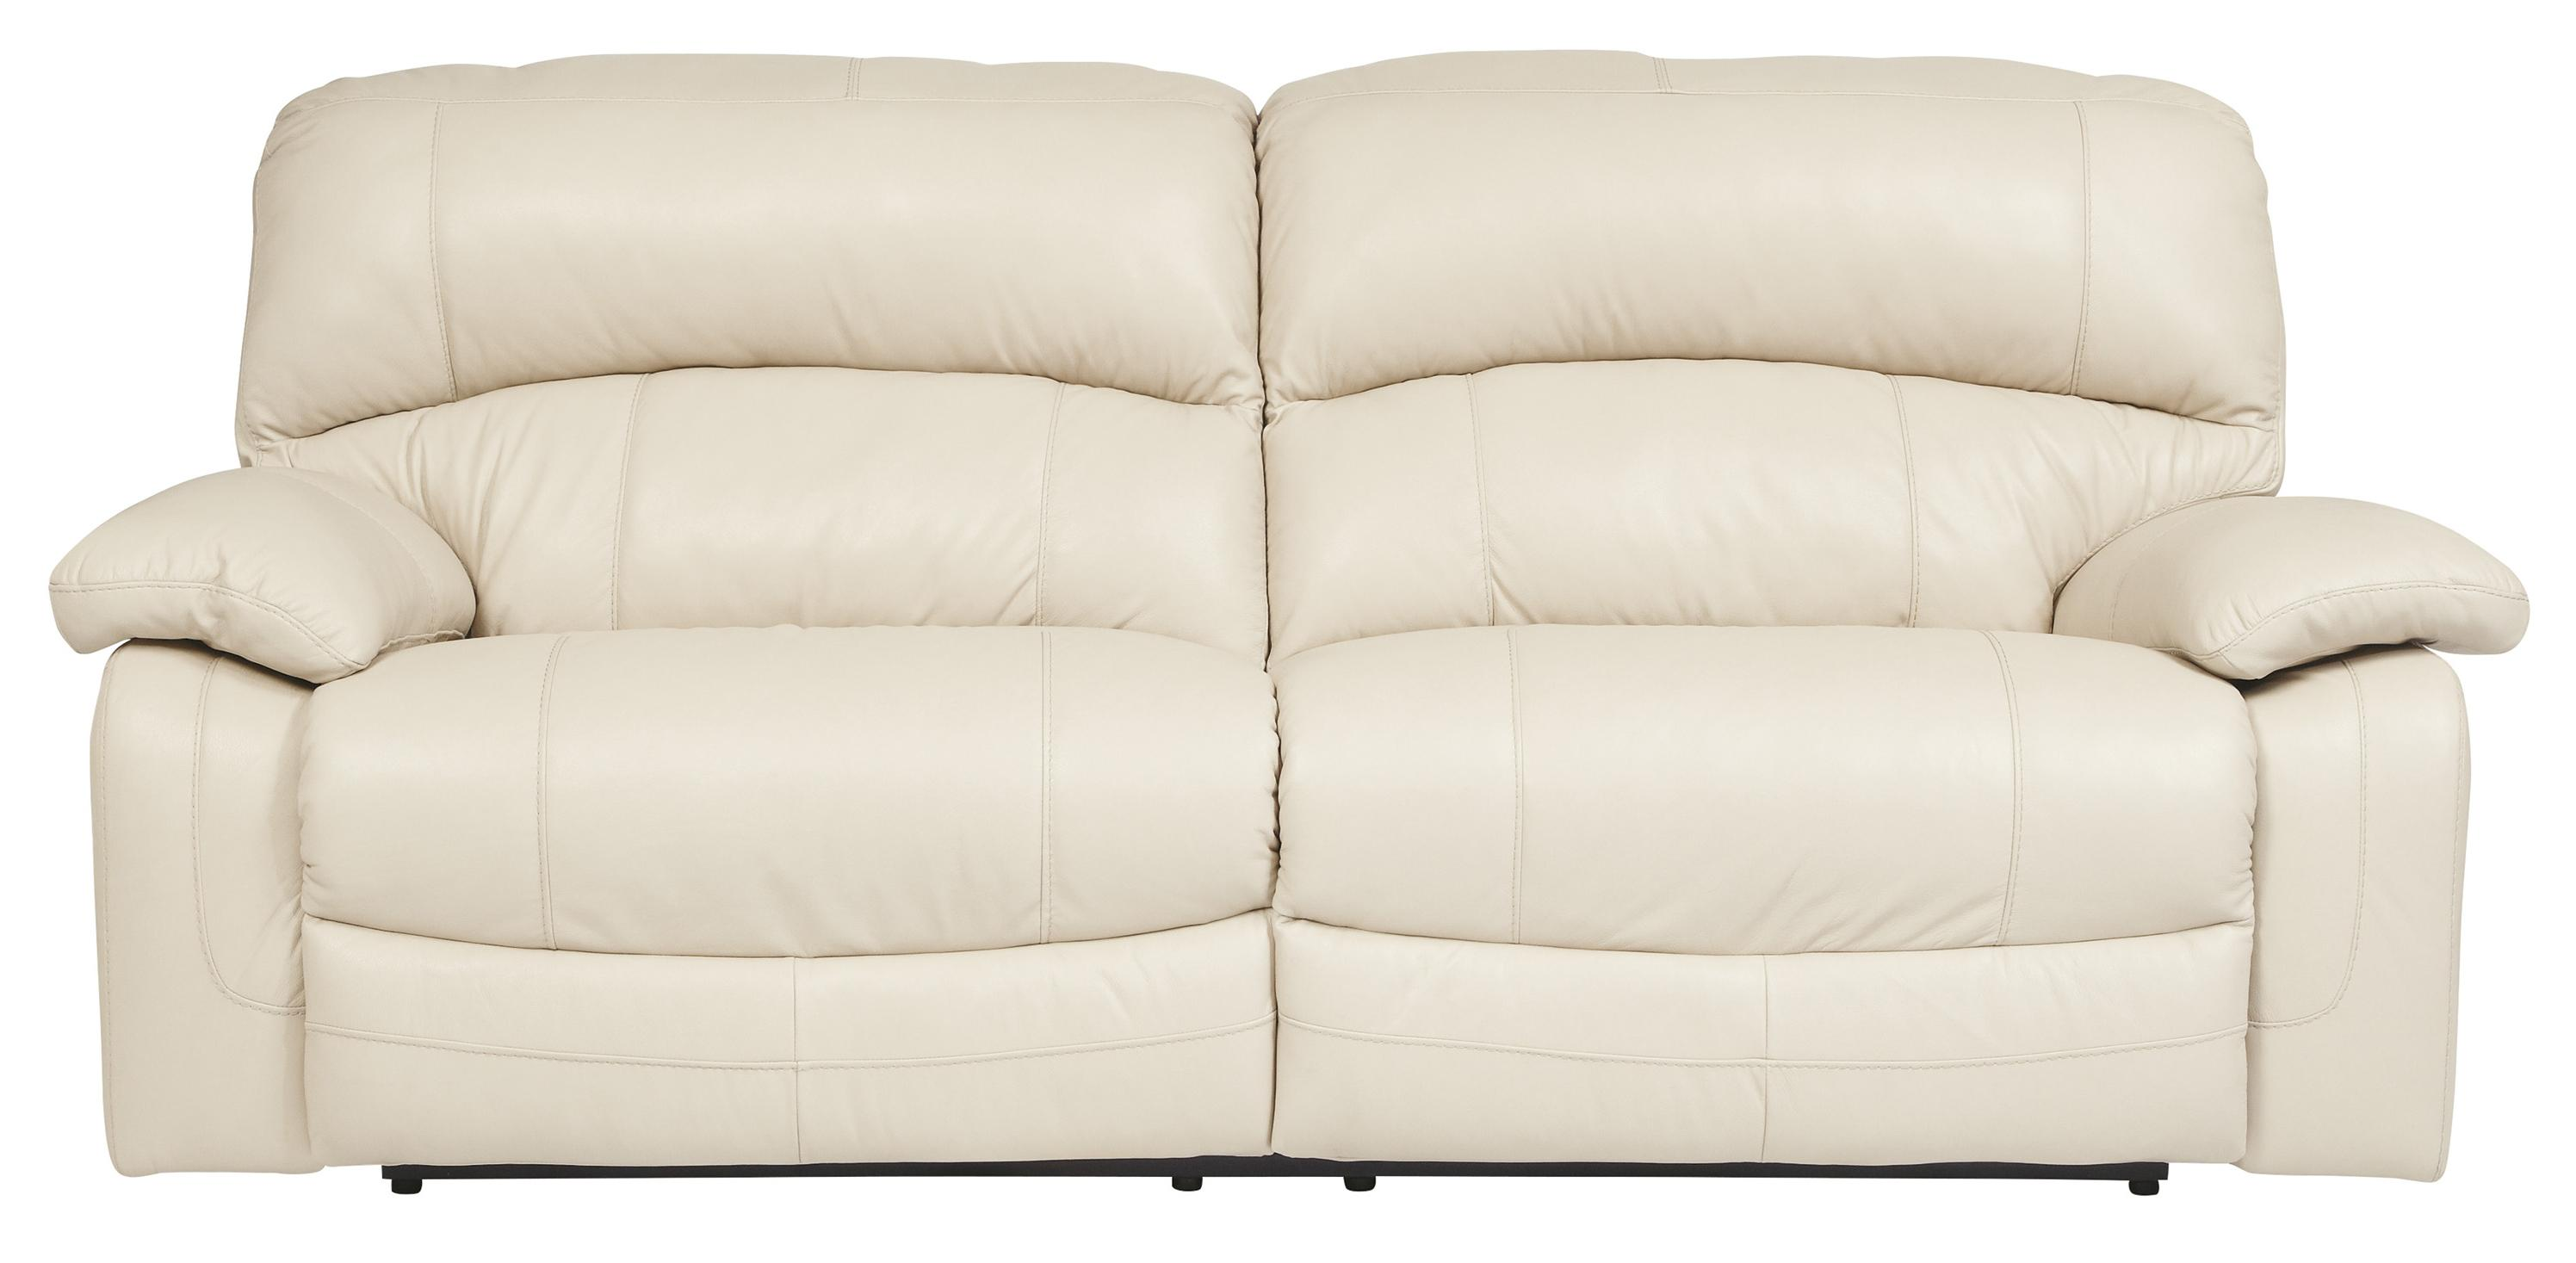 Signature Design by Ashley Damacio - Cream 2 Seat Reclining Power Sofa - Item Number: U9820147